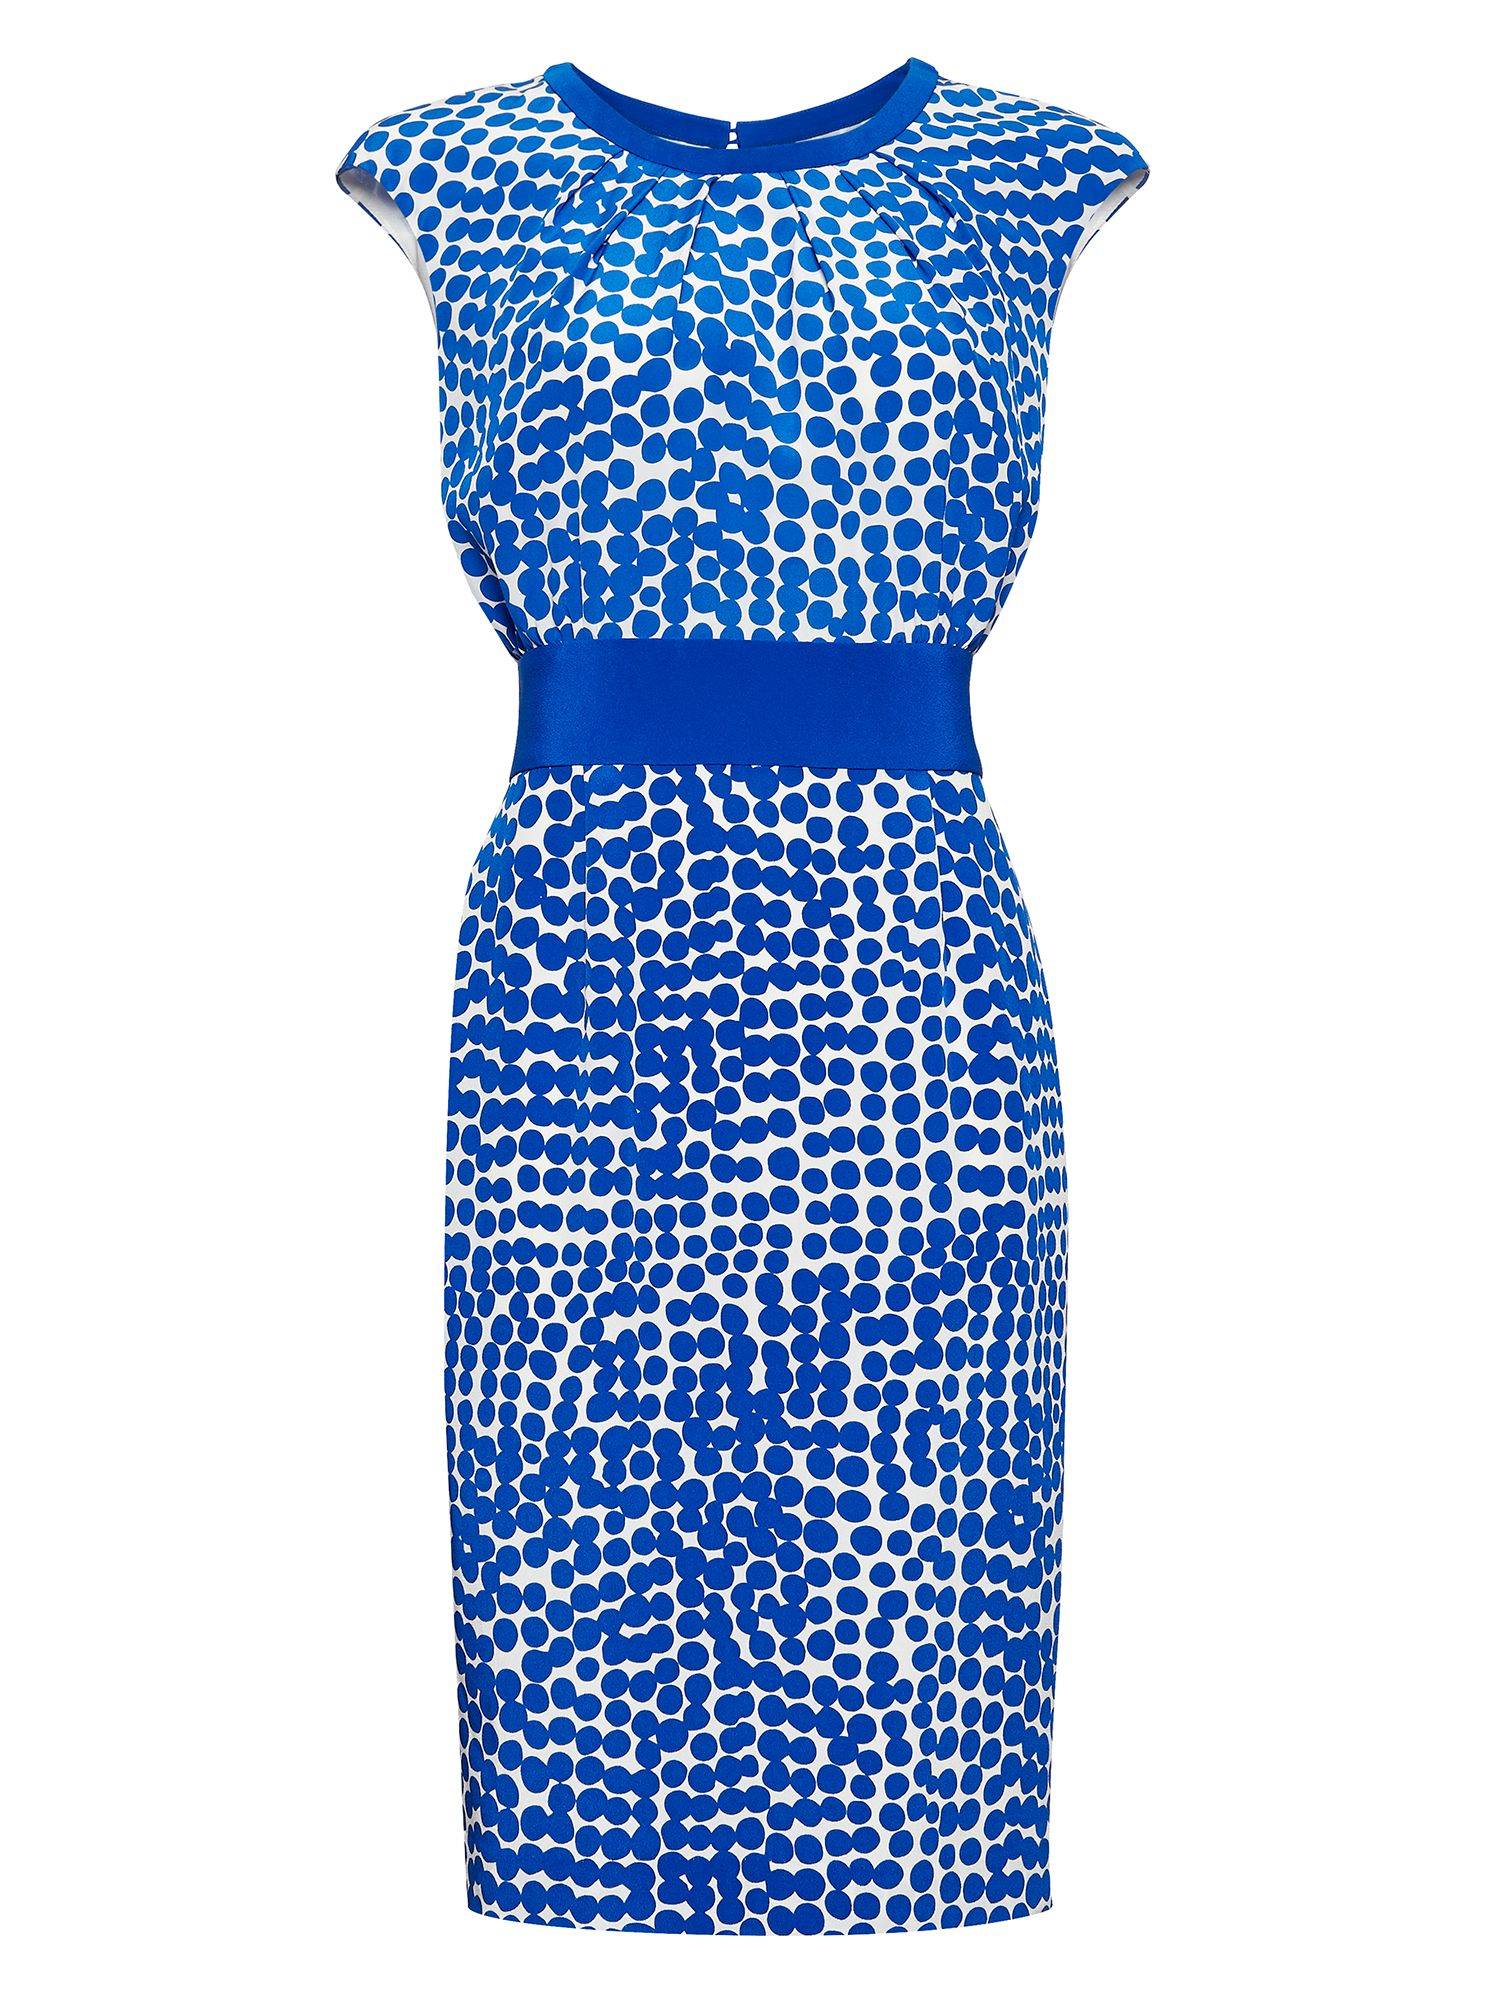 Jaeger: Abstract Print Silk Dress